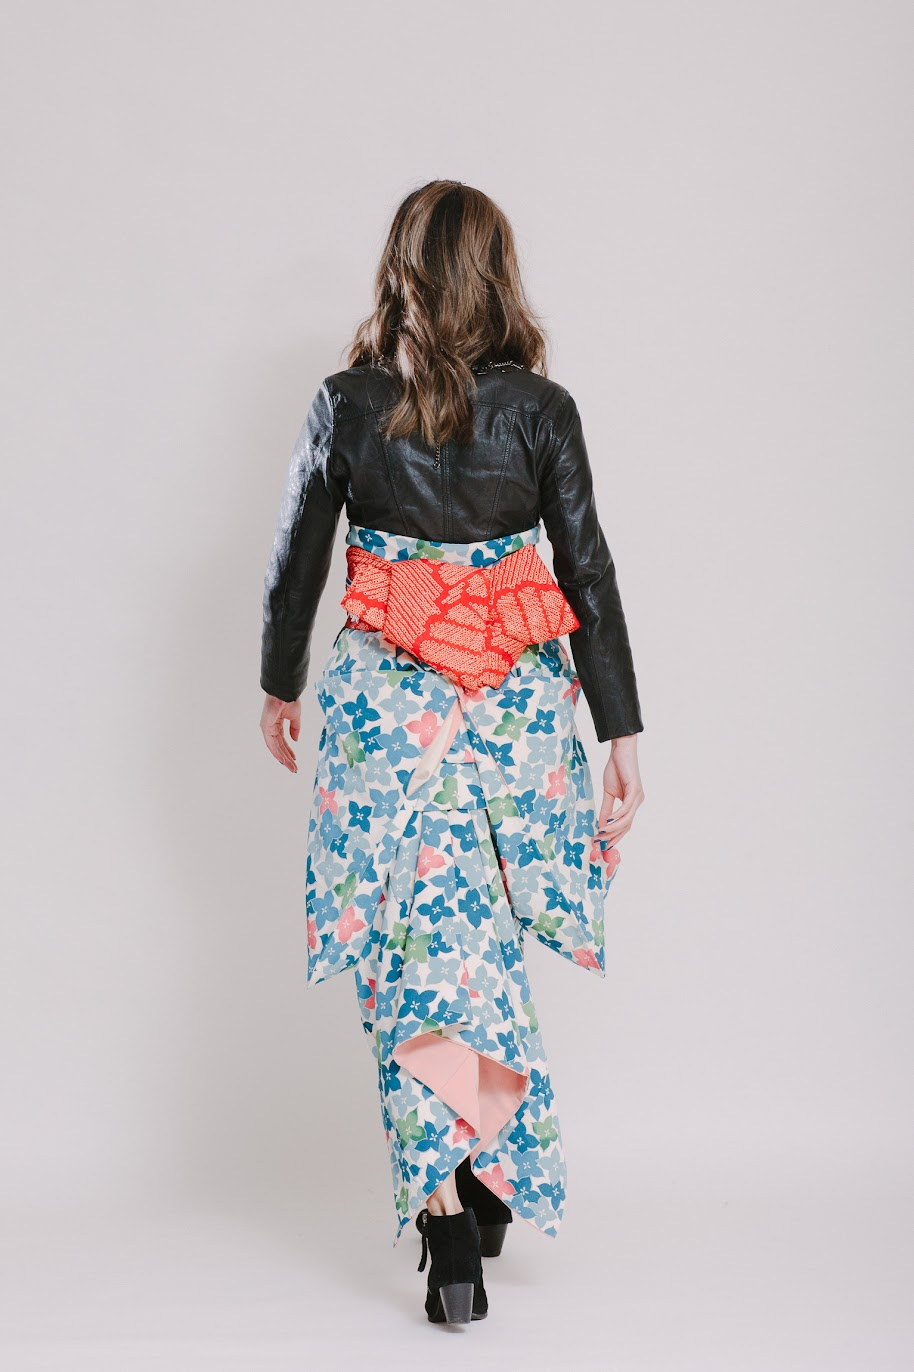 Audrey's Outfit at Kimono Styling Party - FAFAFOOM.com